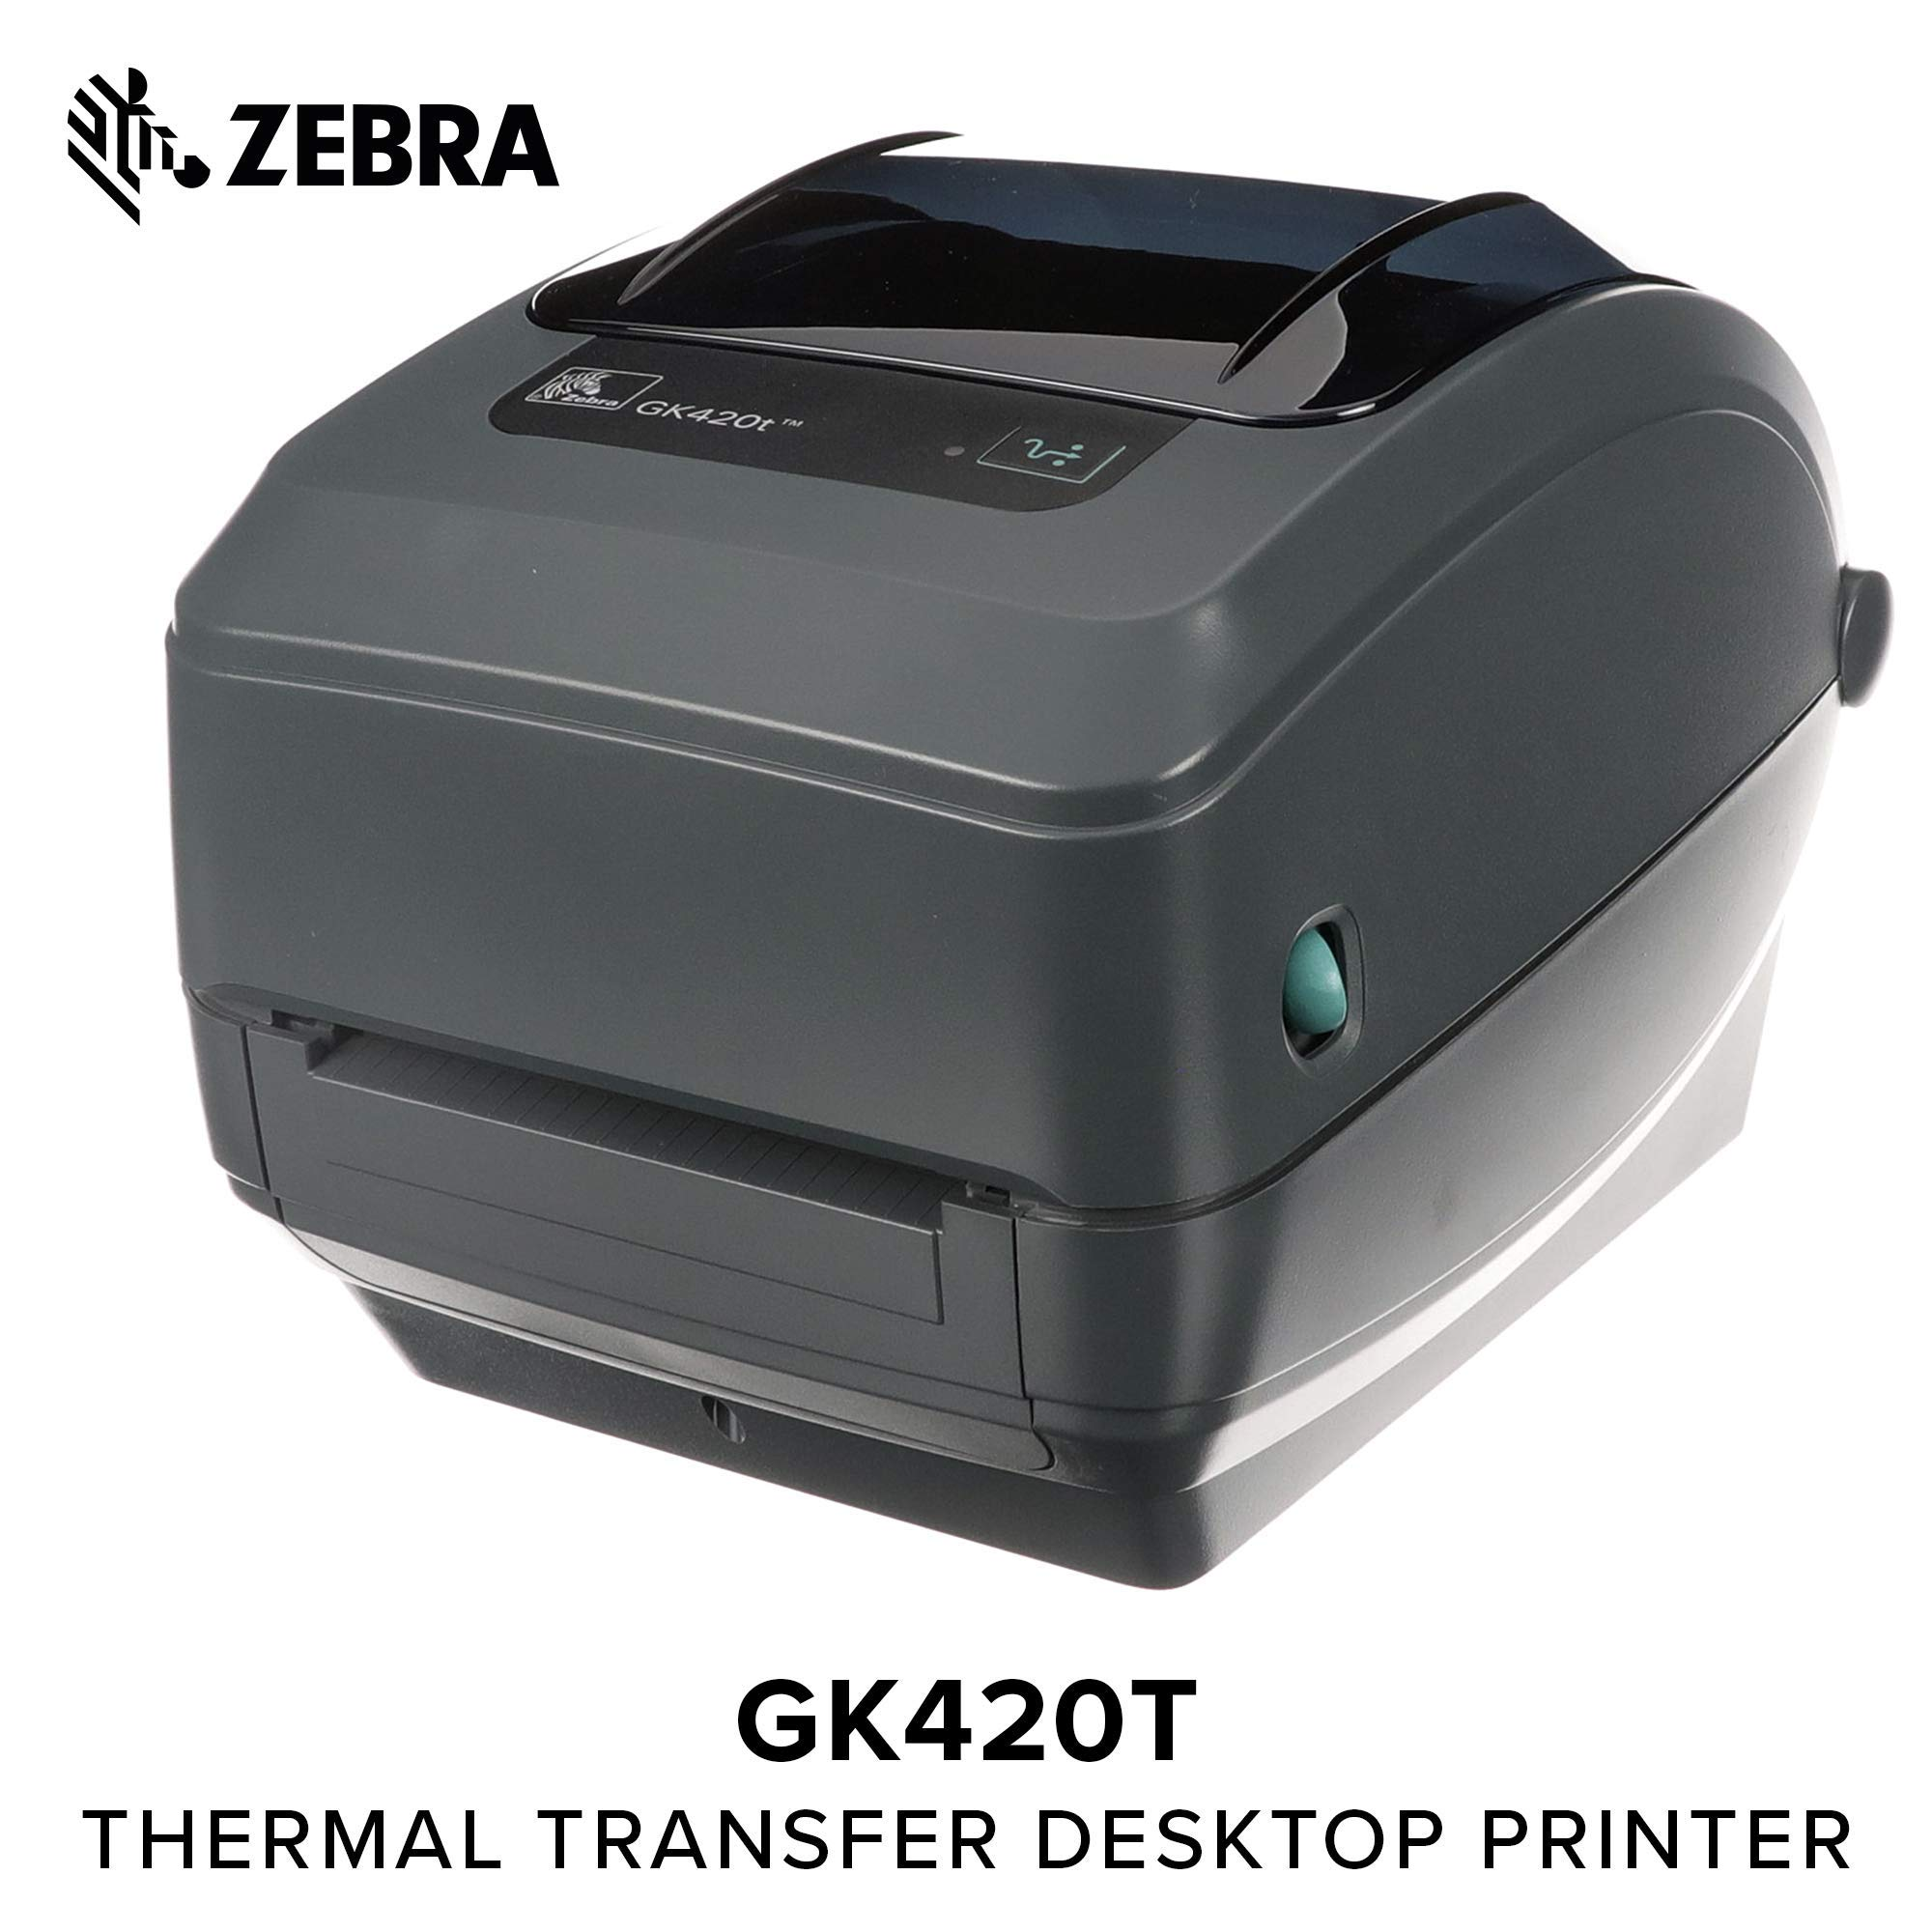 Zebra - GK420t Thermal Transfer Desktop Printer for Labels, Receipts, Barcodes, Tags, and Wrist Bands - Print Width of 4 in - USB and Ethernet Port Connectivity (Renewed) by ZEBRA (Image #1)